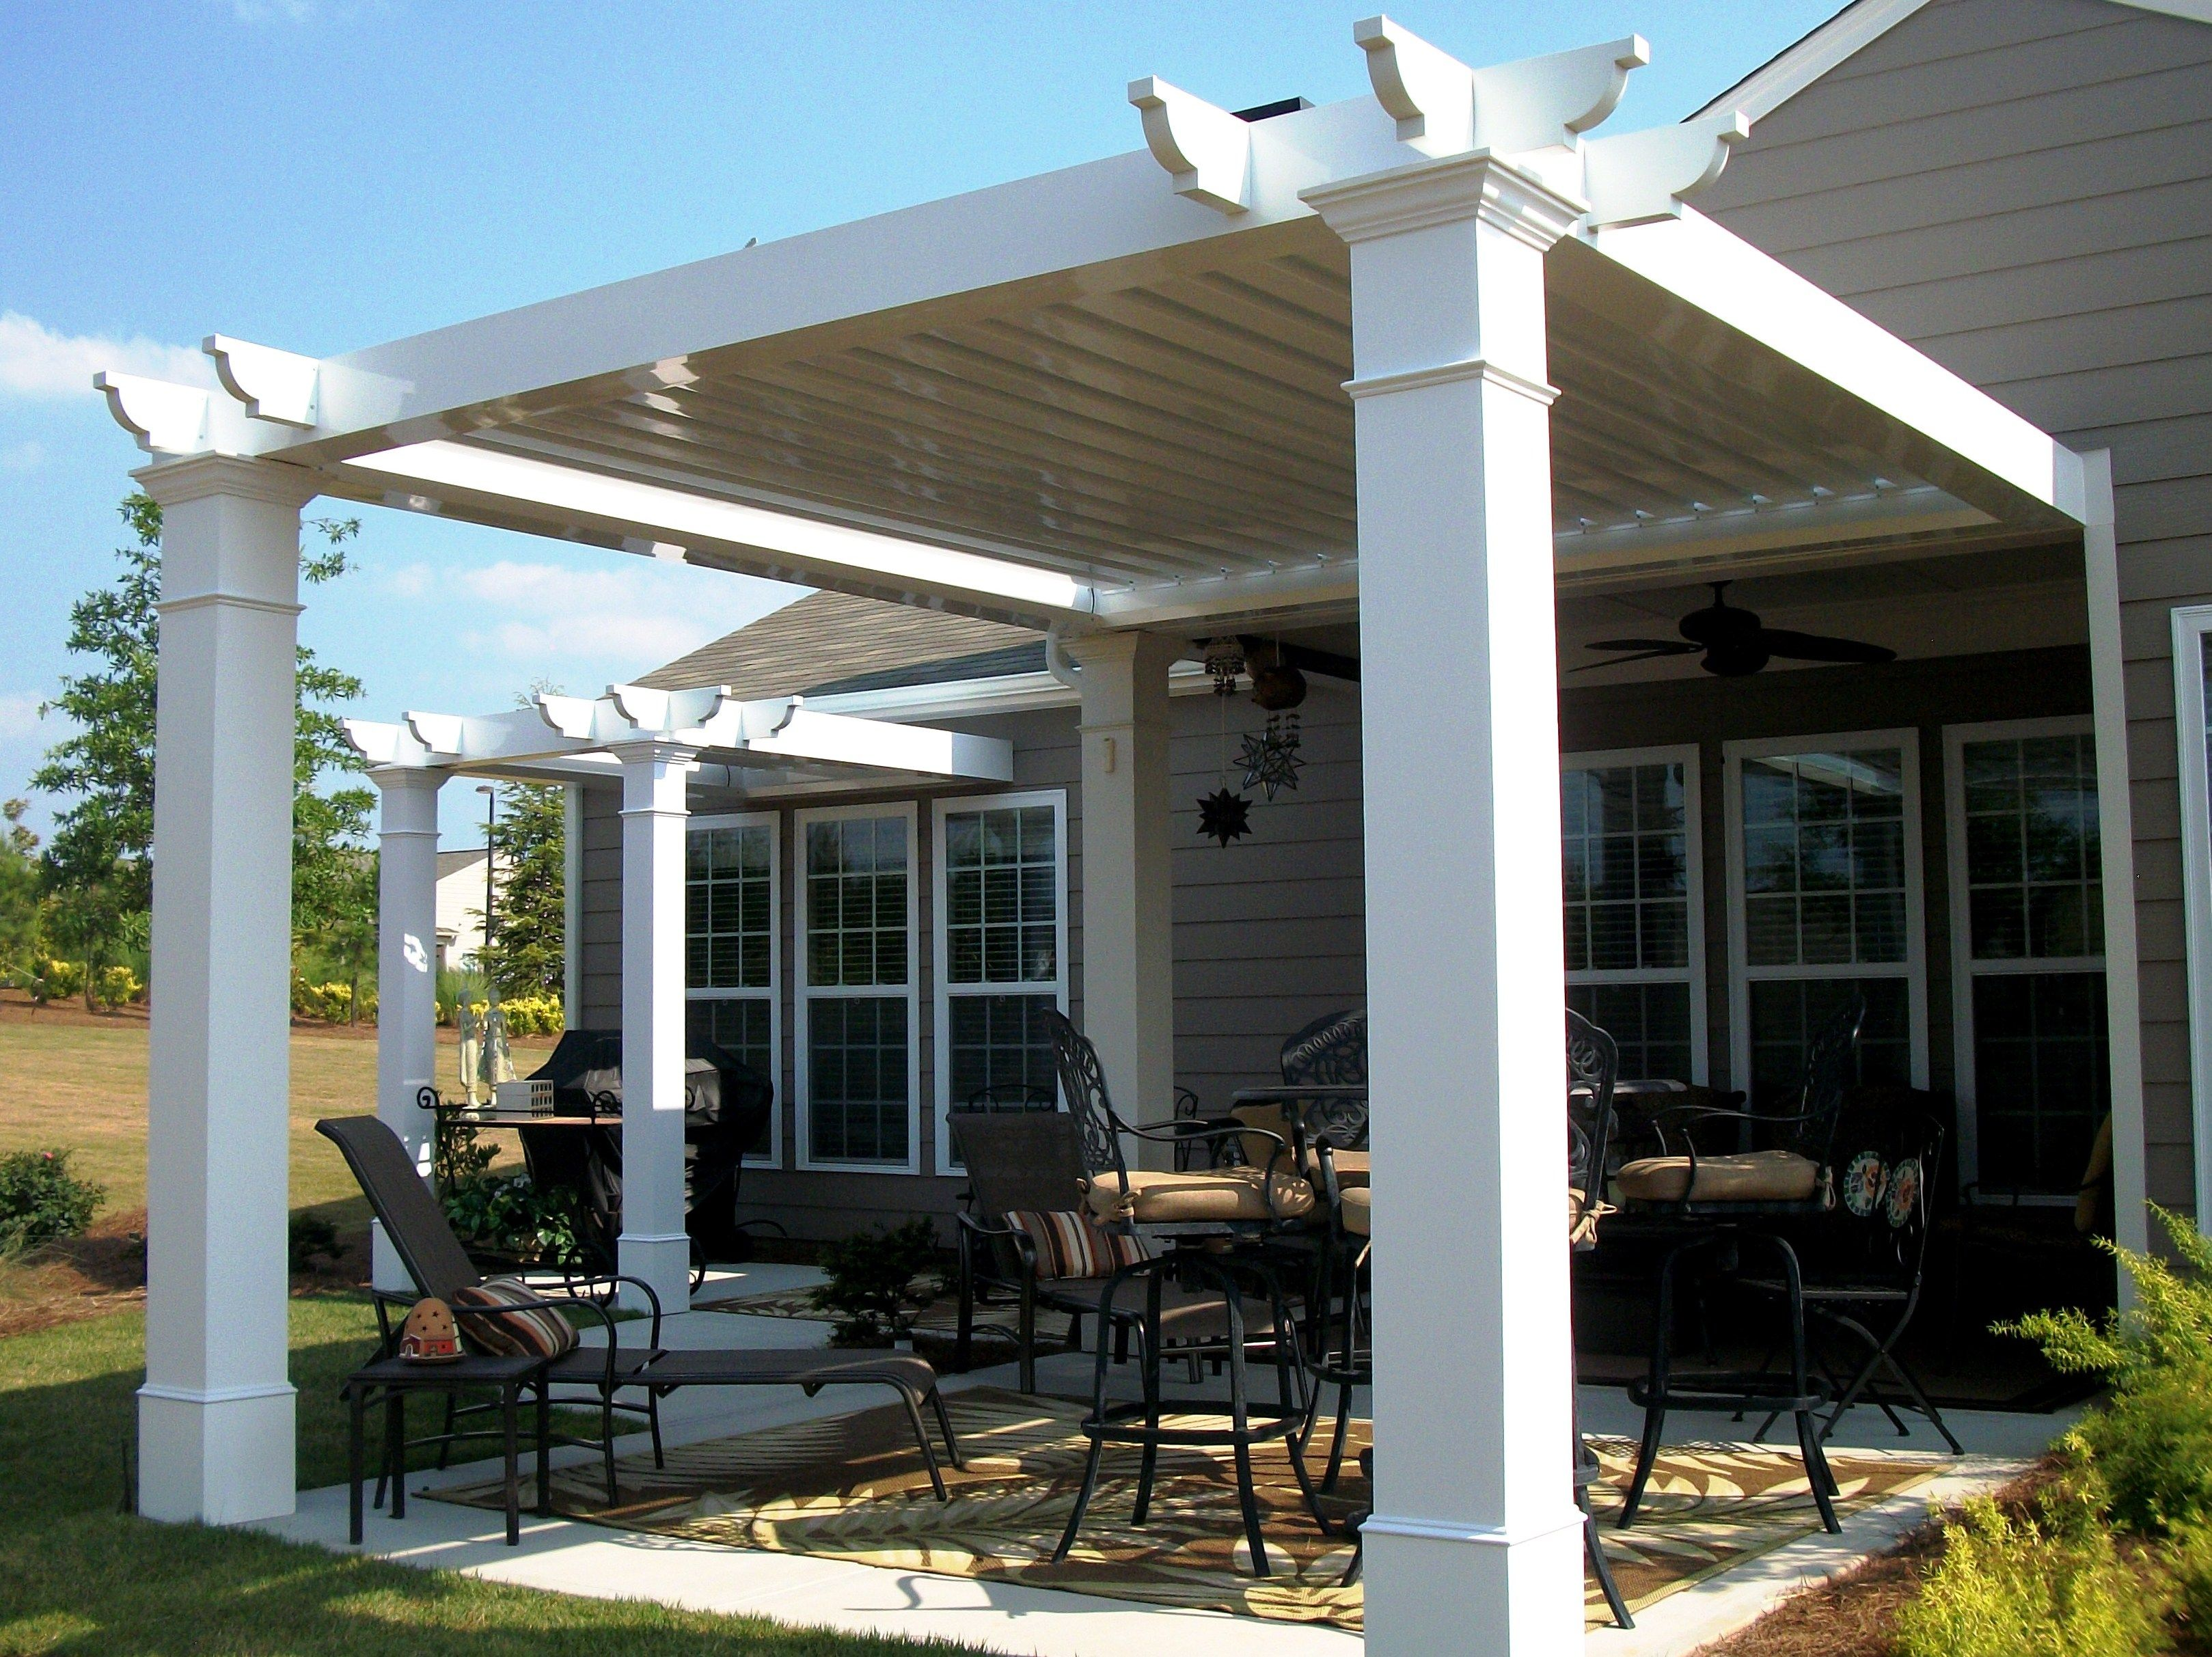 Outdoor Kitchens Screen Enclosures Sunrooms Absolute Aluminum Blog Outdoor Pergola Modern Pergola Designs Pergola Designs